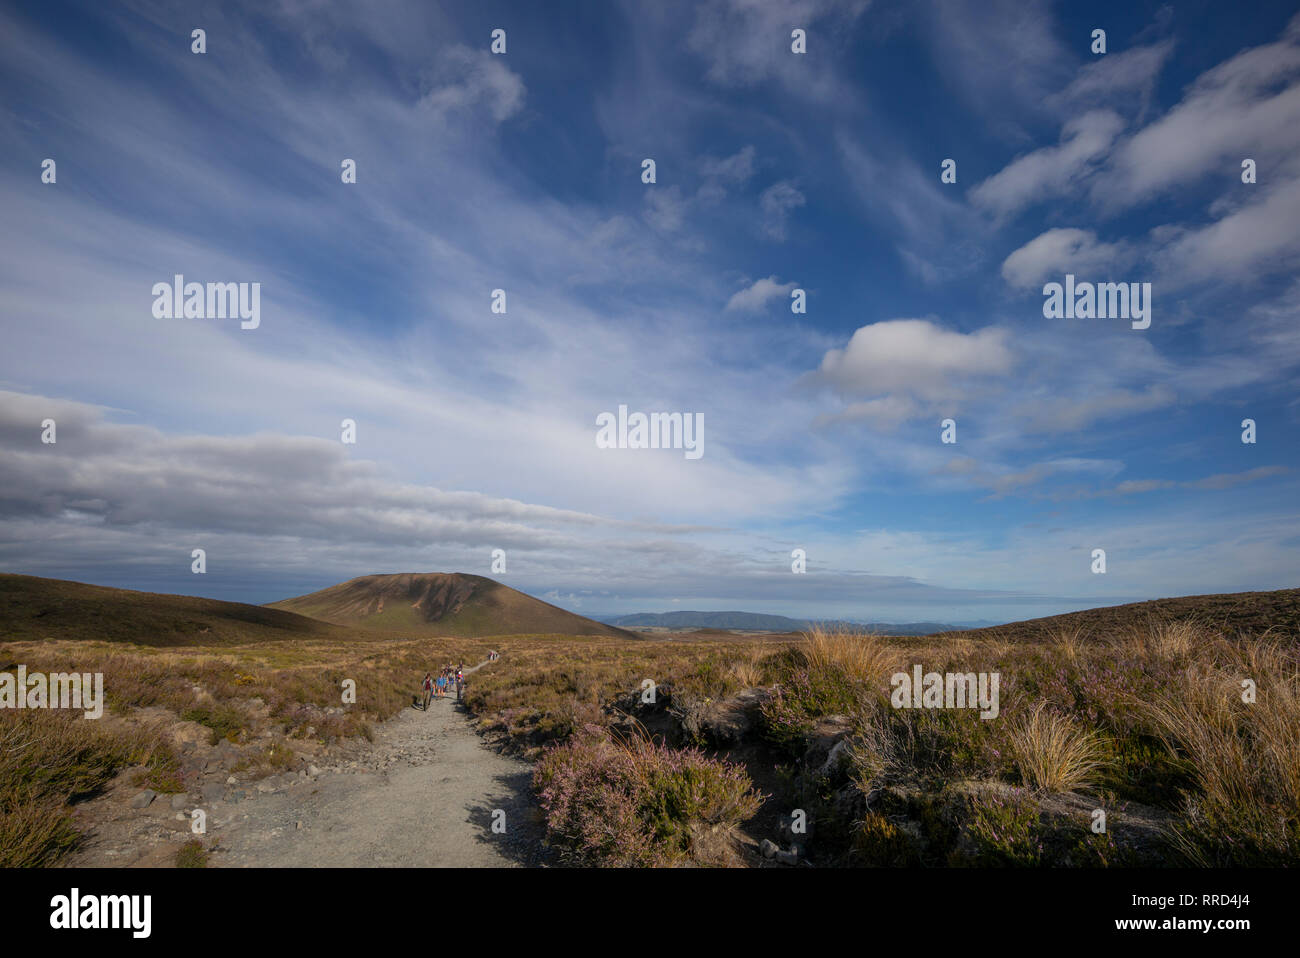 The landscape of the Tongariro walking route, New Zealand. Stock Photo